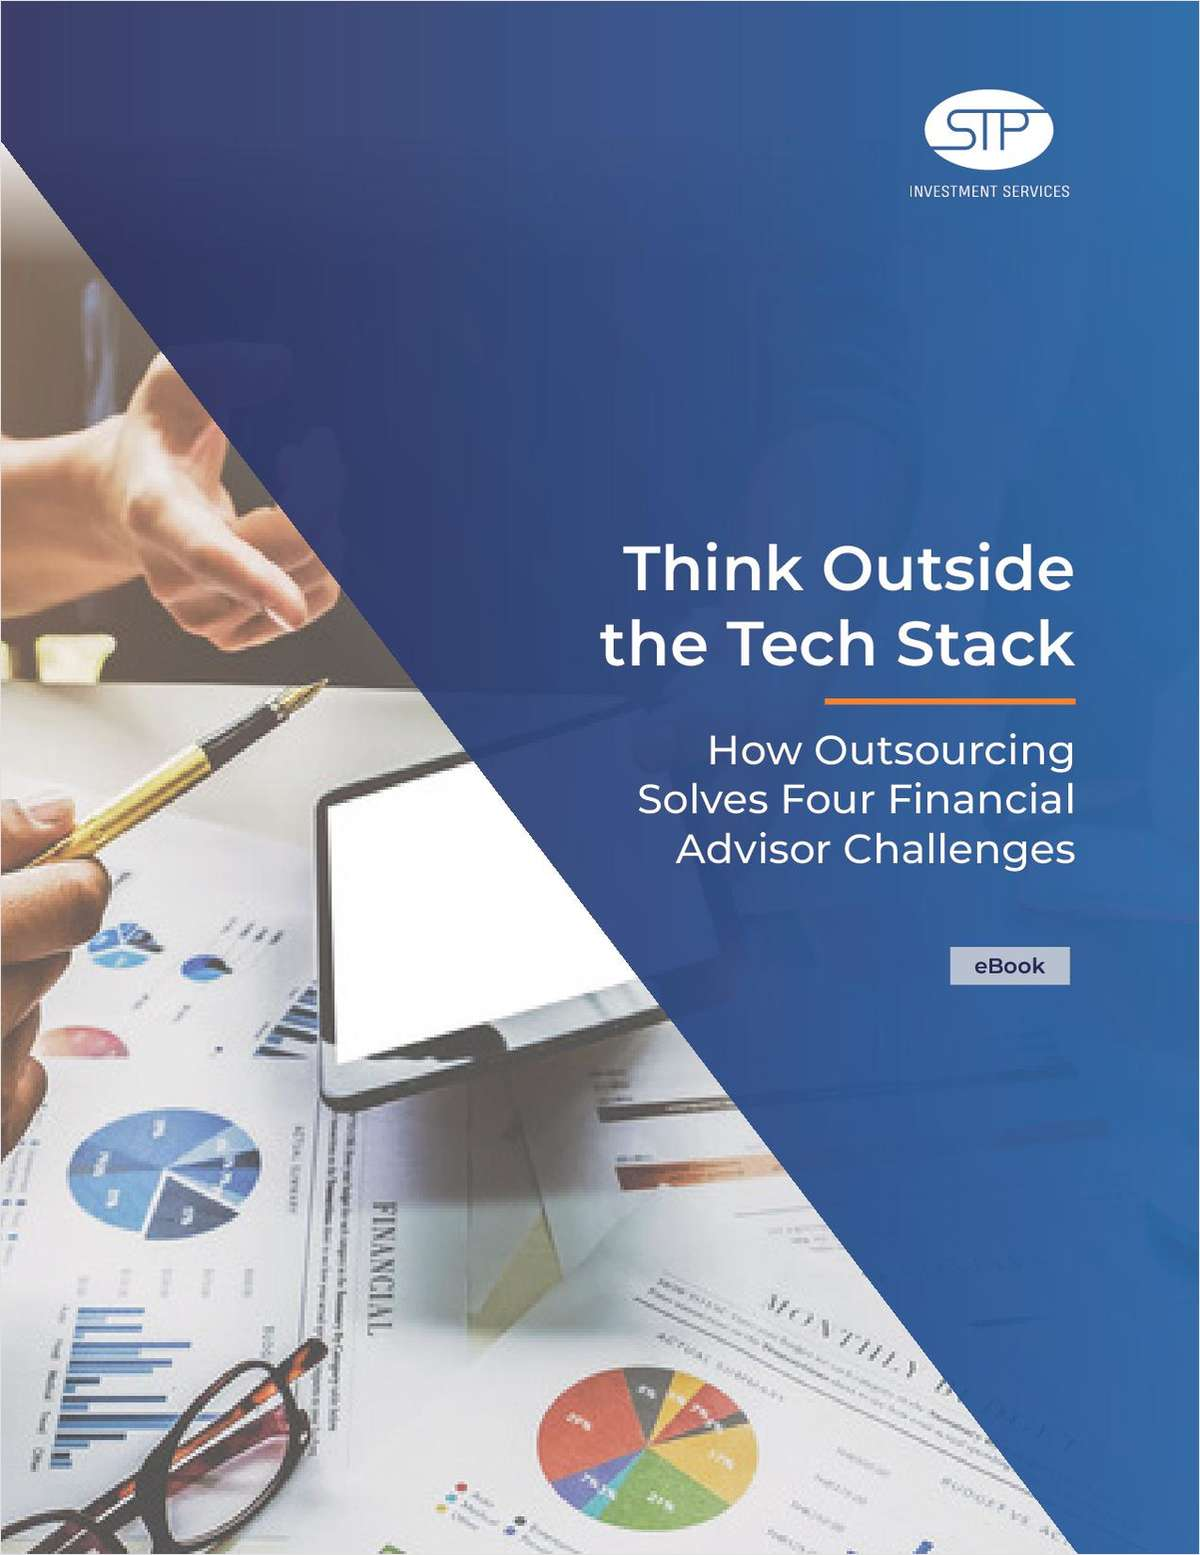 Think Outside the Tech Stack: How Outsourcing Solves Four Financial Advisor Challenges